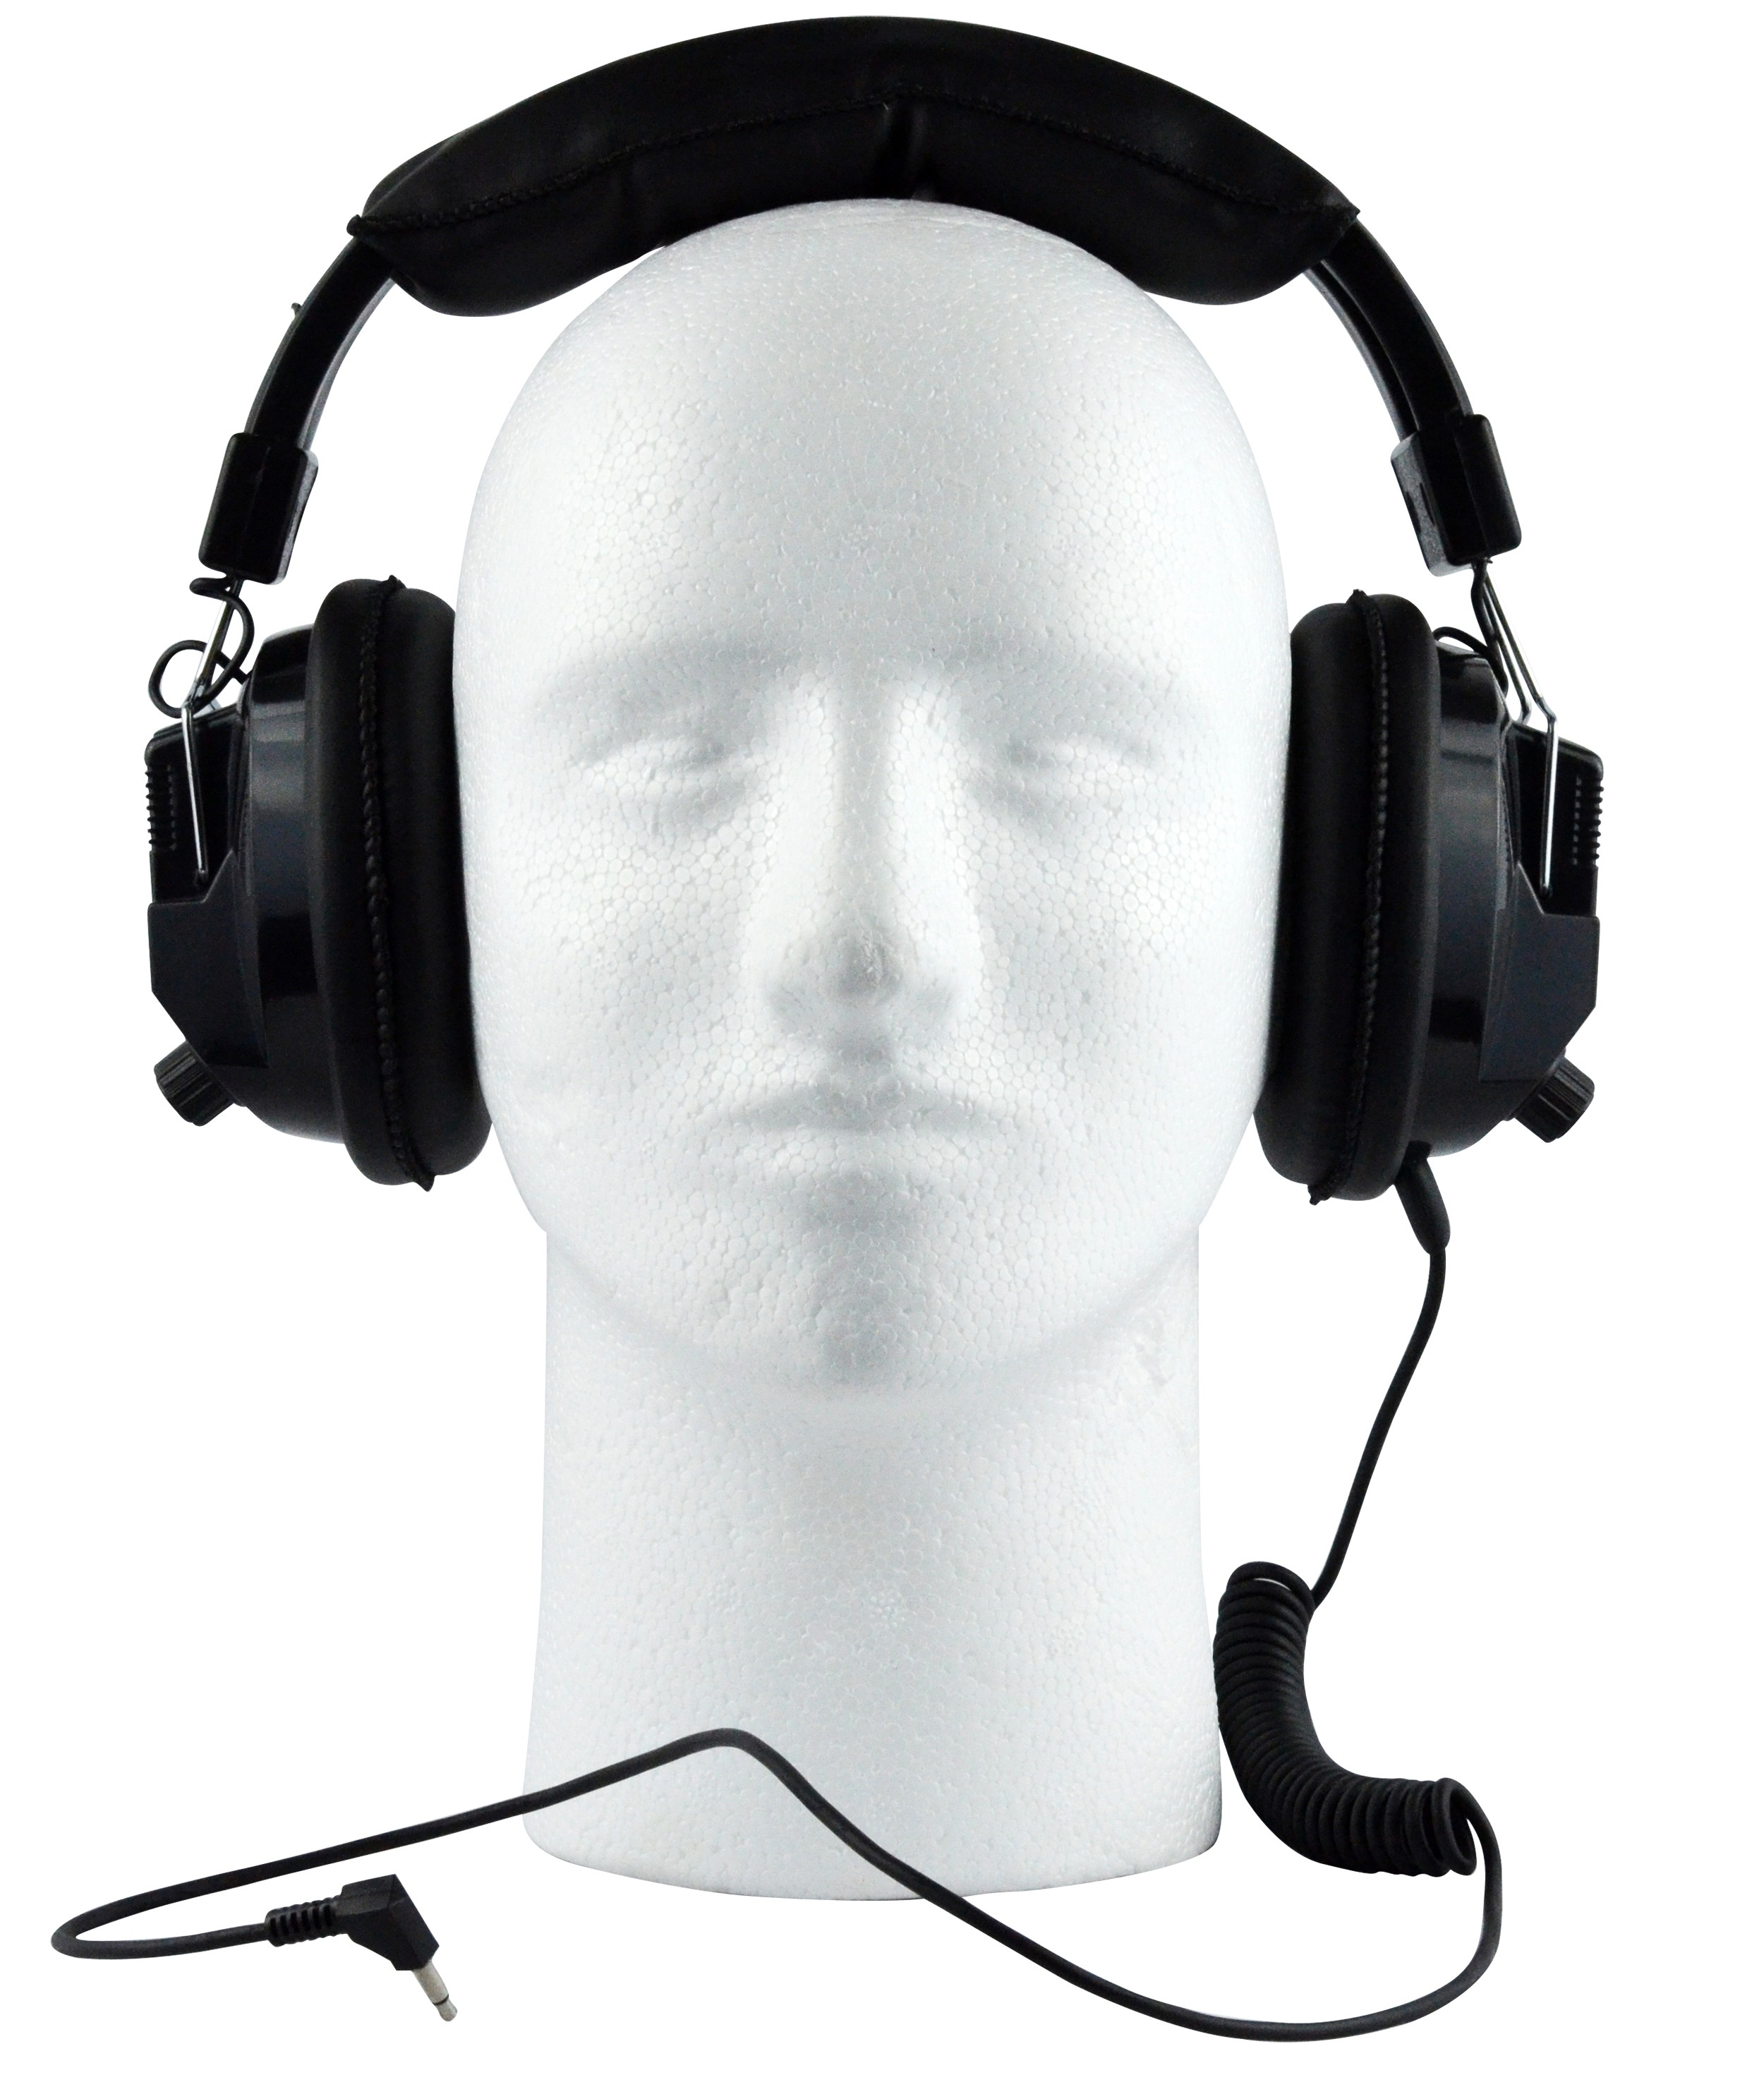 RDE-1401 Scanner Headsets